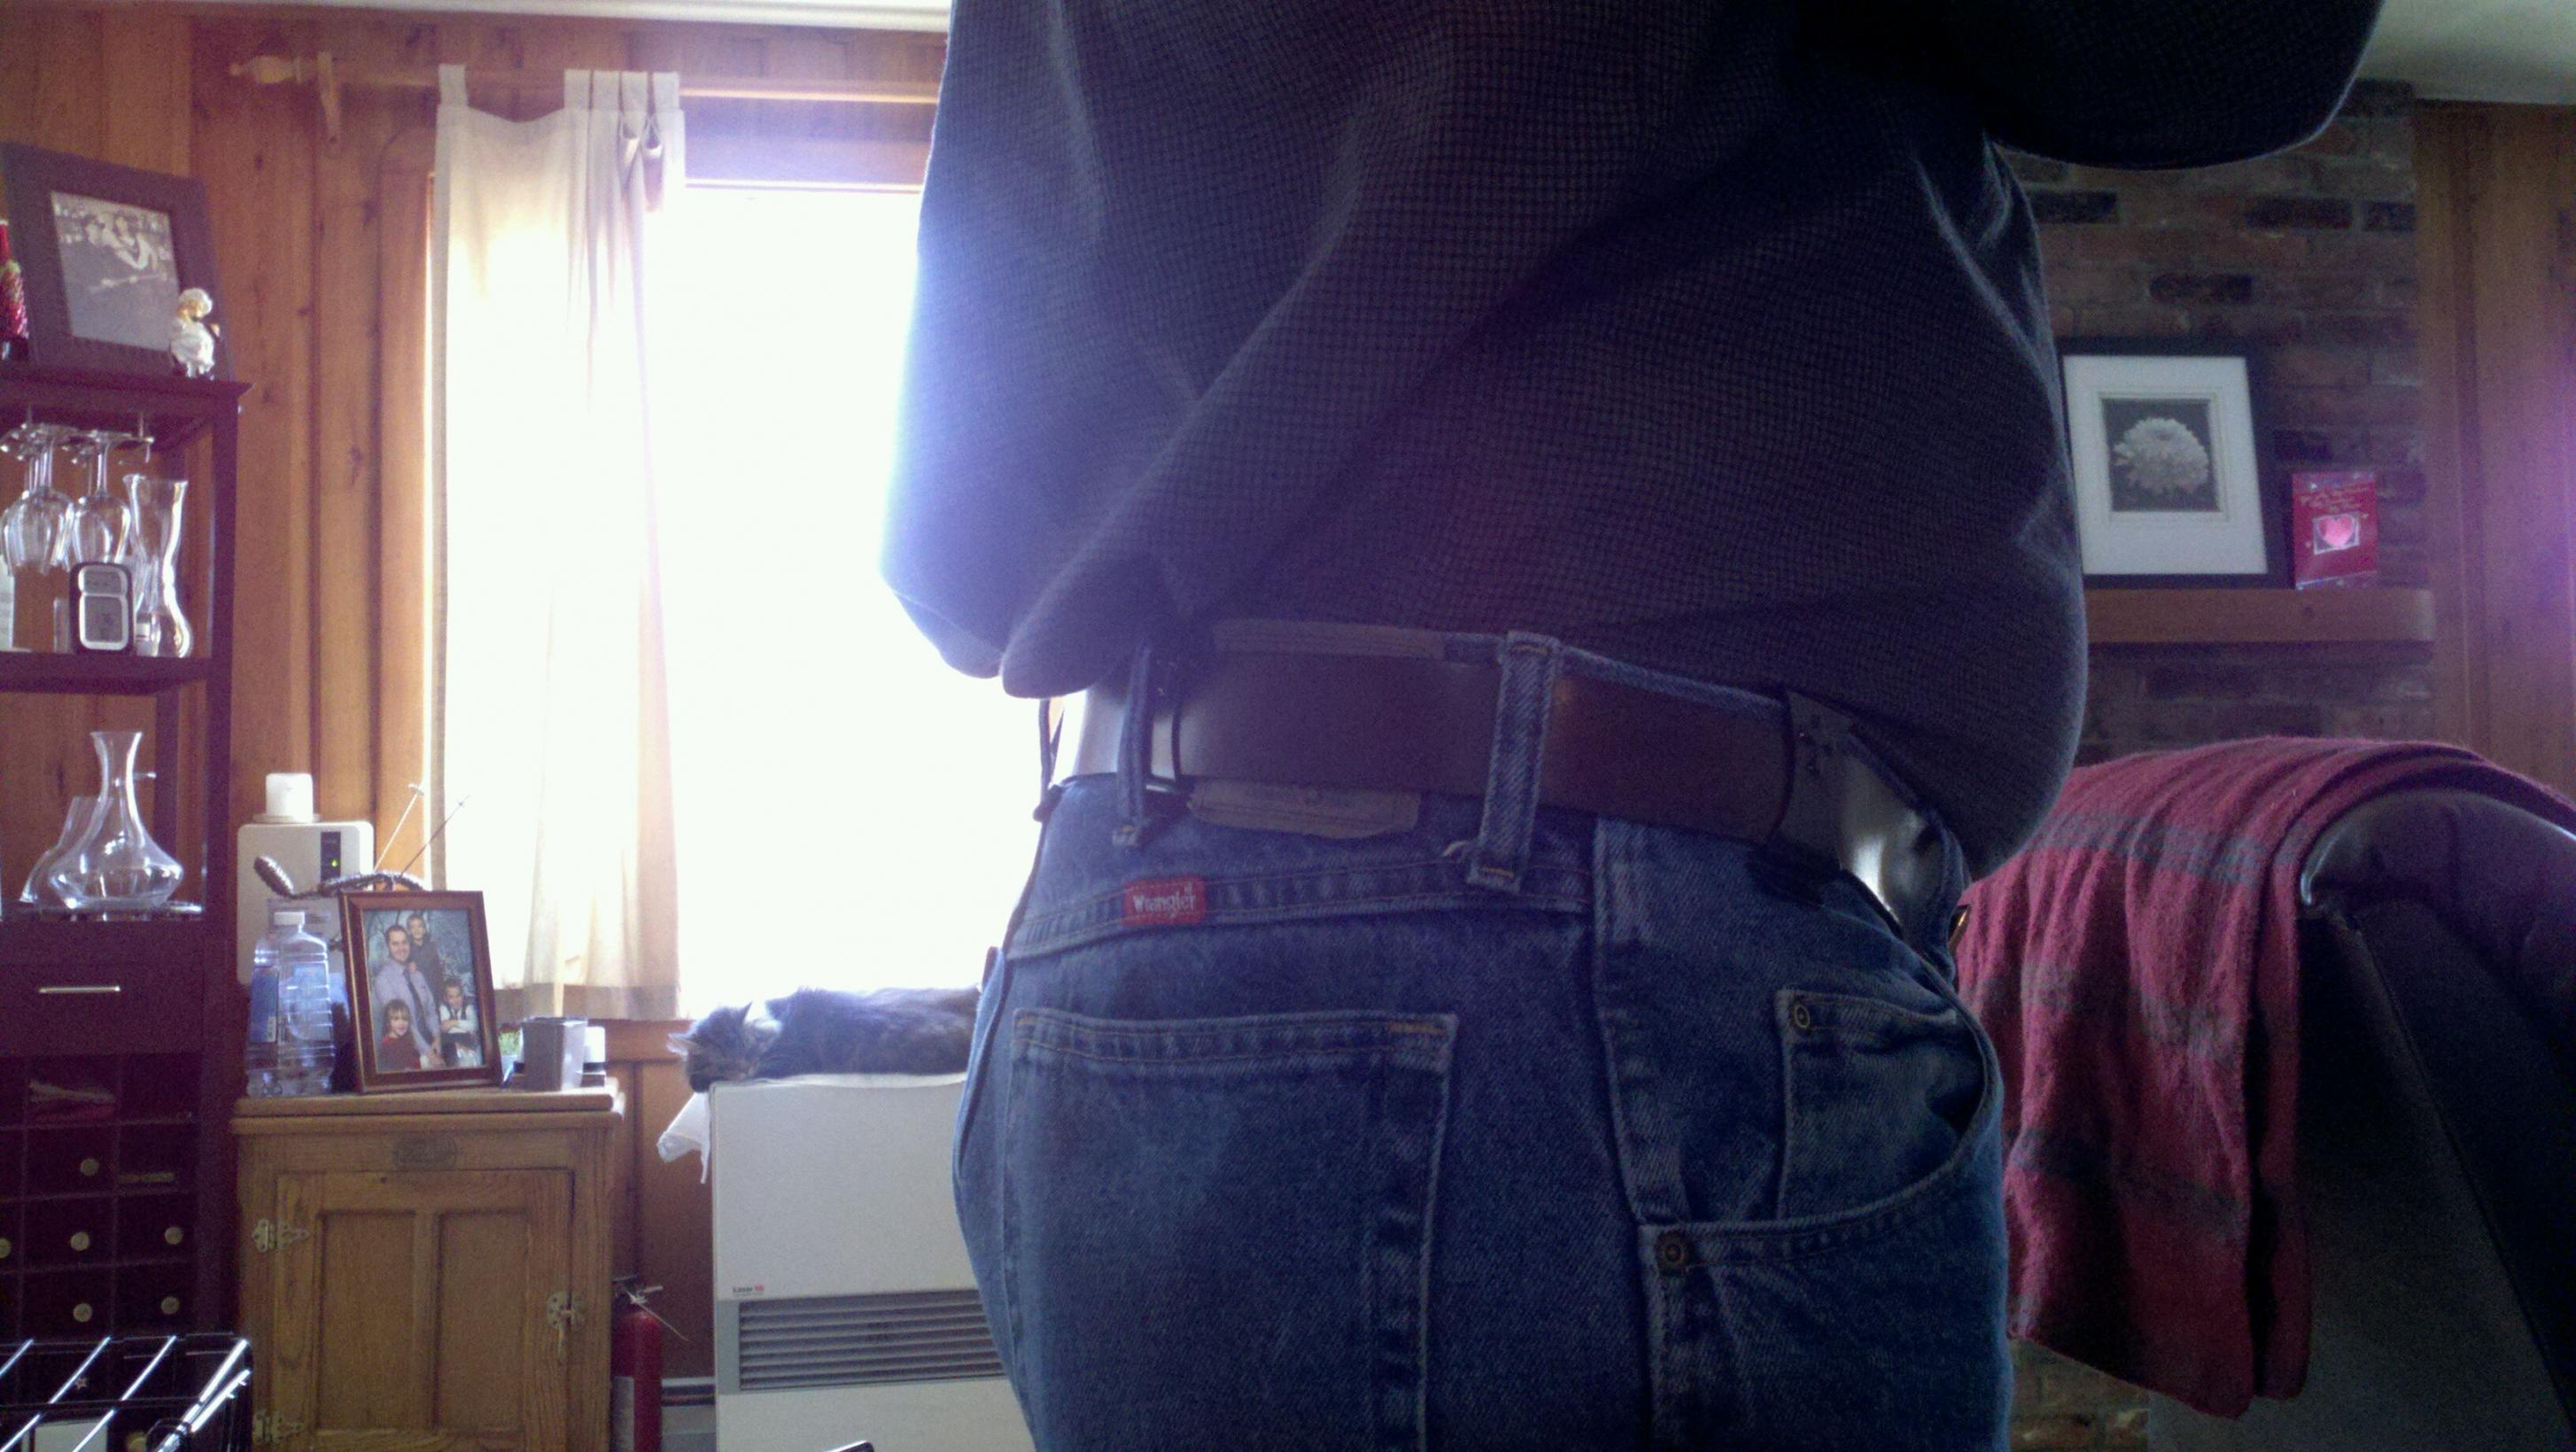 Let's See Your Pic's - How You Carry Concealed.-imagesequence00000005.jpg